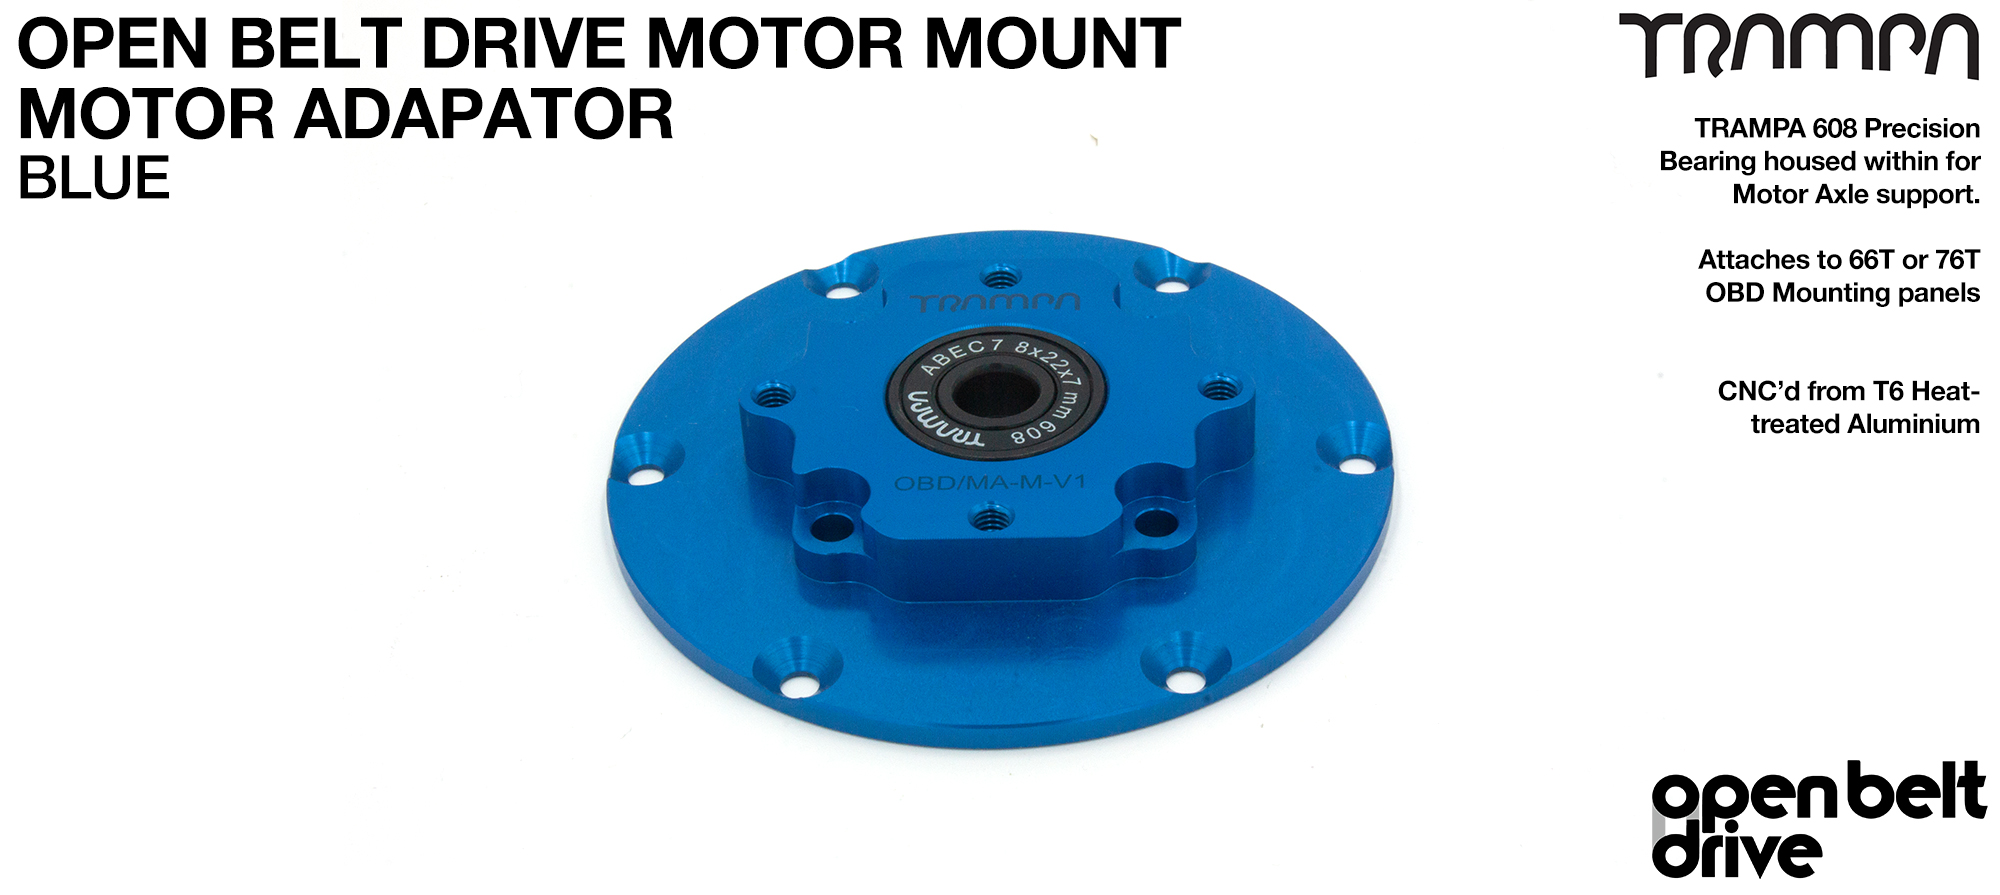 BLUE OBD Motor Adaptors with Housed Bearing